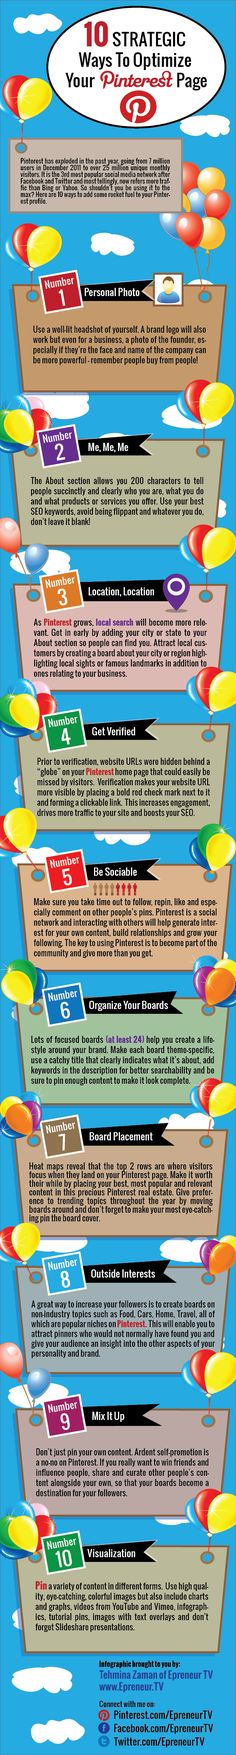 10 Ways To Optimize Your Pinterest Profile #marketing #infographic